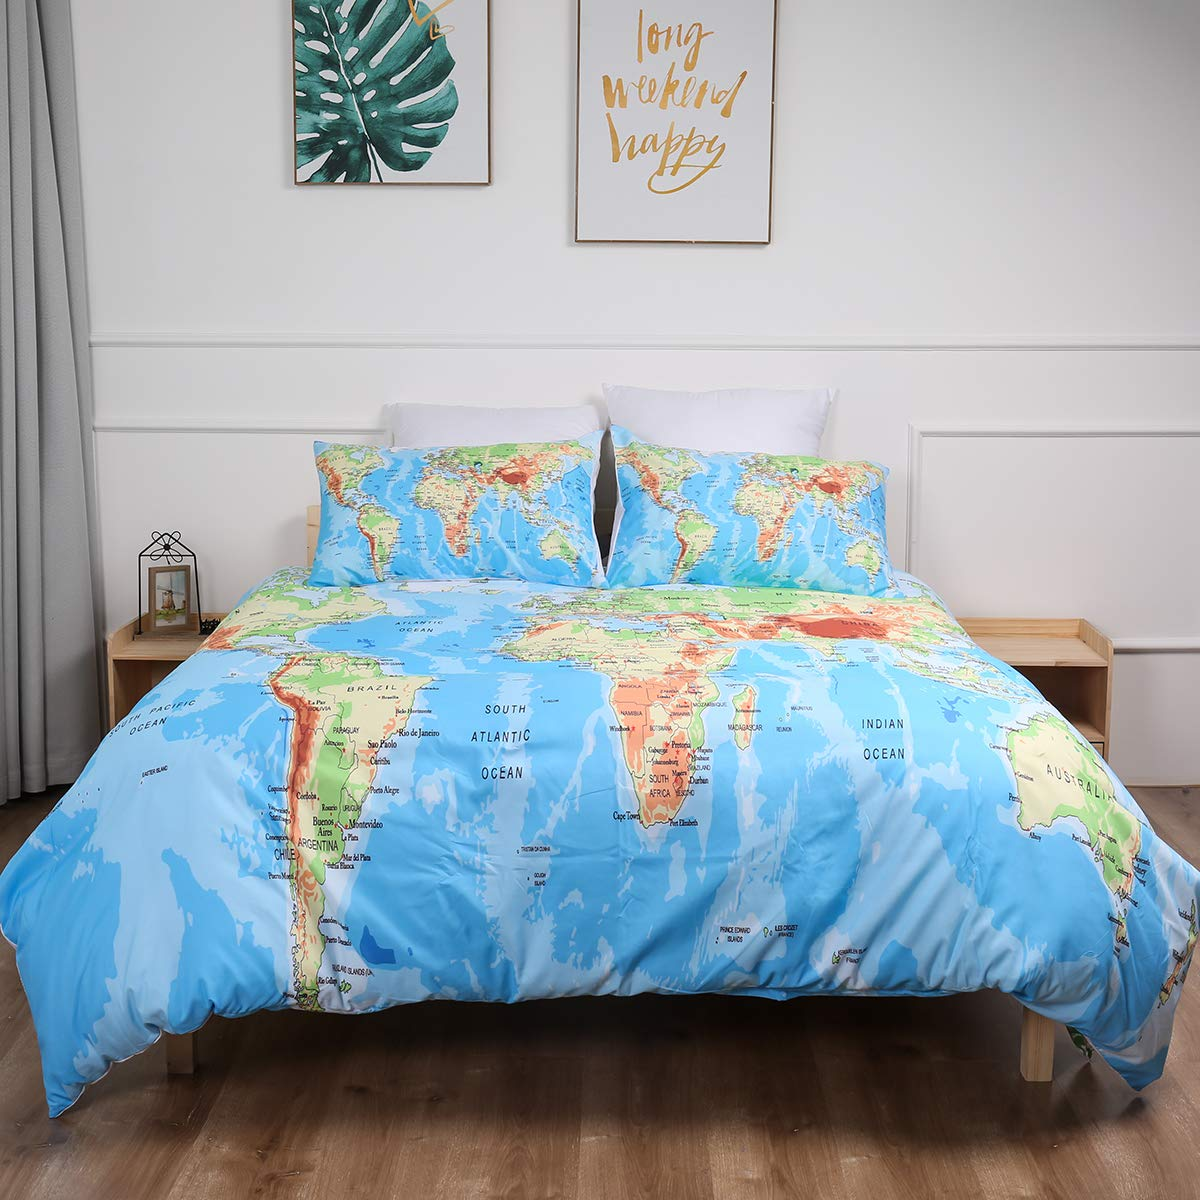 """World Map Bedding Set Twin Size,Blue Ocean and Yellow Land Duvet Cover with Zipper Closure,2 Pieces Soft Microfiber Blue Quilt Cover with 1 Pillowcases Twin Size 68""""x 86"""""""